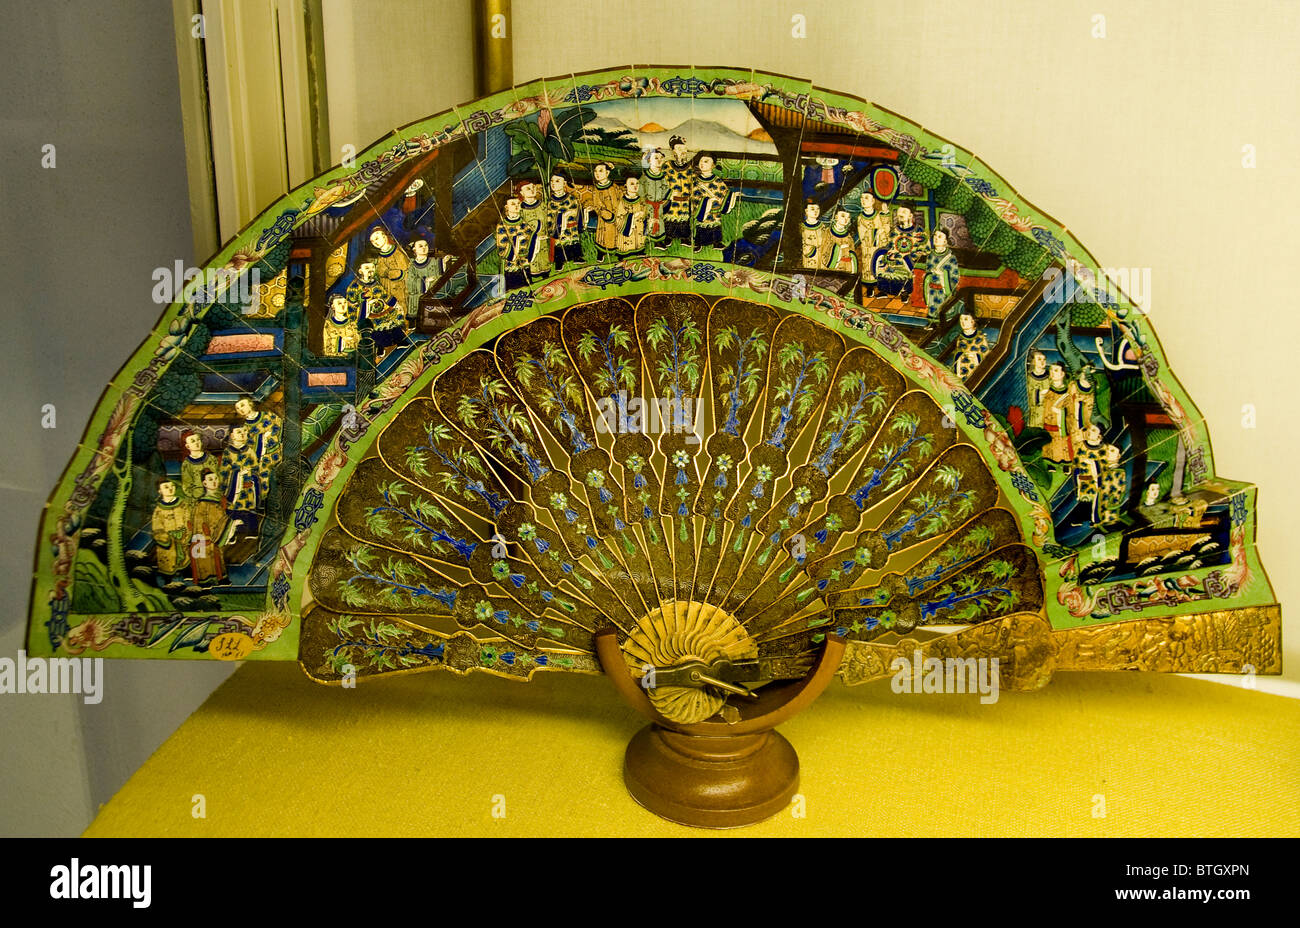 Japanese Fan Stock Photos & Japanese Fan Stock Images - Alamy